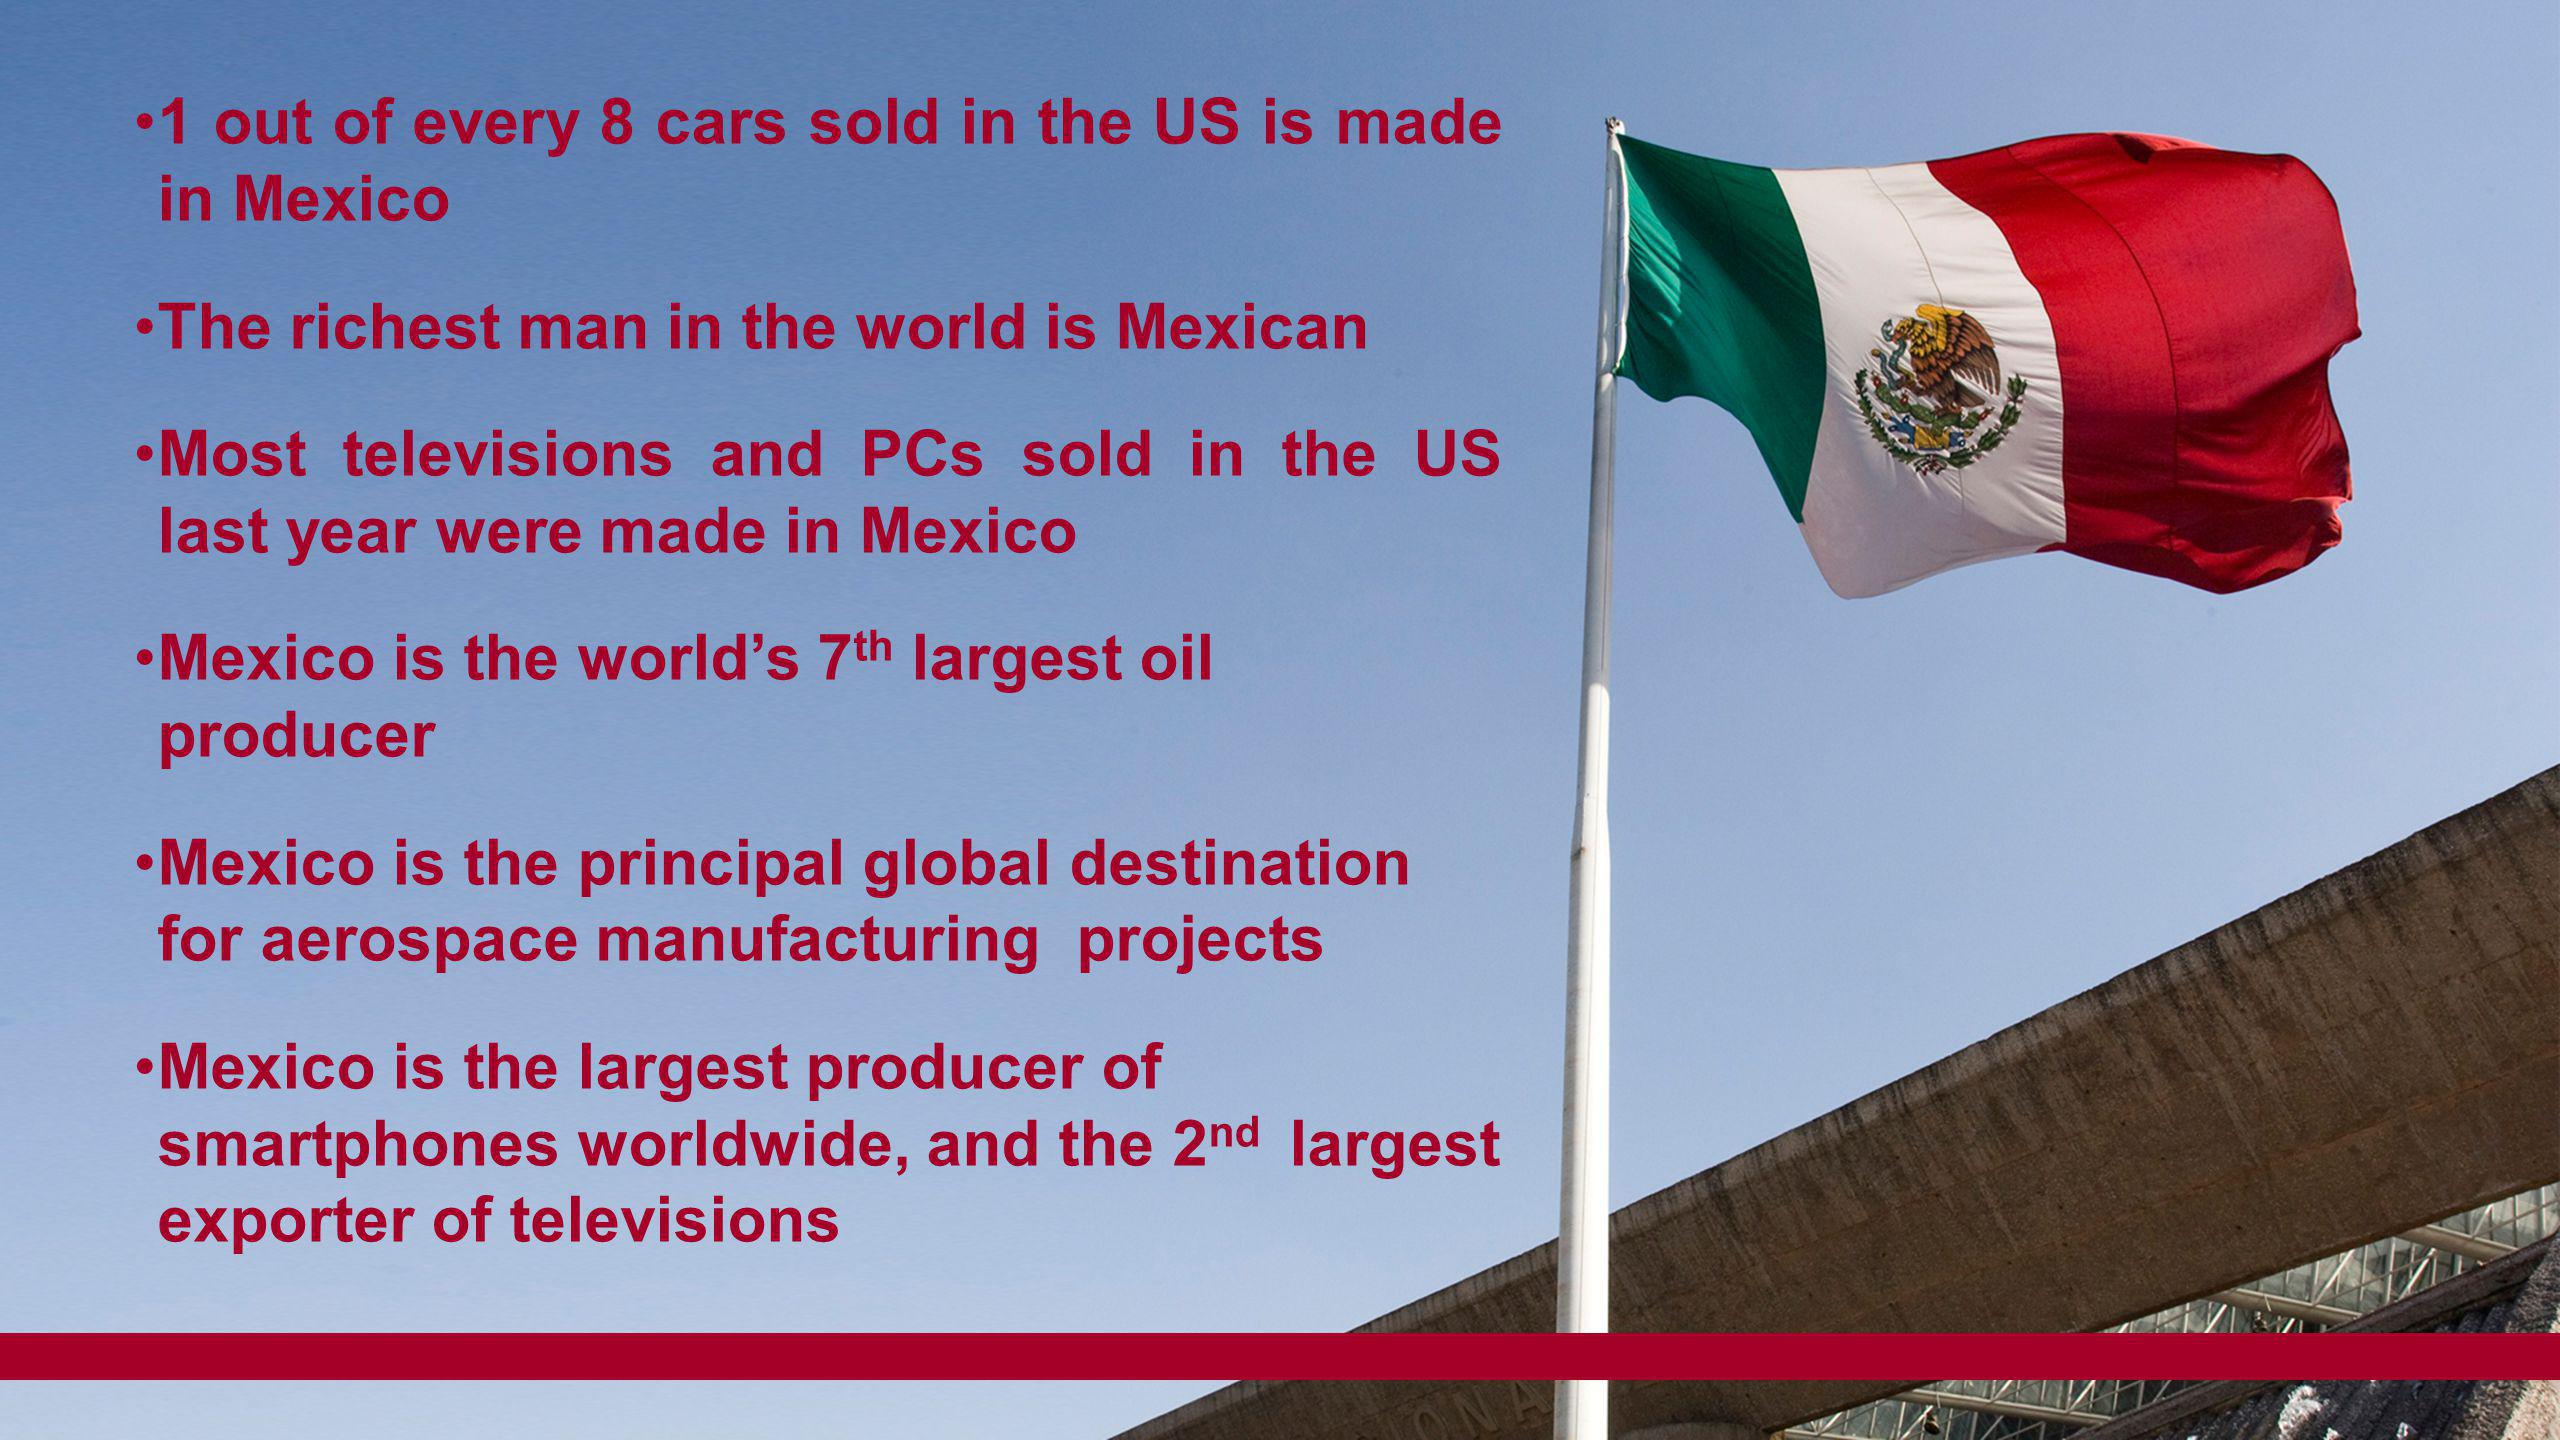 1 out of every 8 cars sold in the US is made in Mexico The richest man in the world is Mexican Most televisions and PCs sold in the US last year were